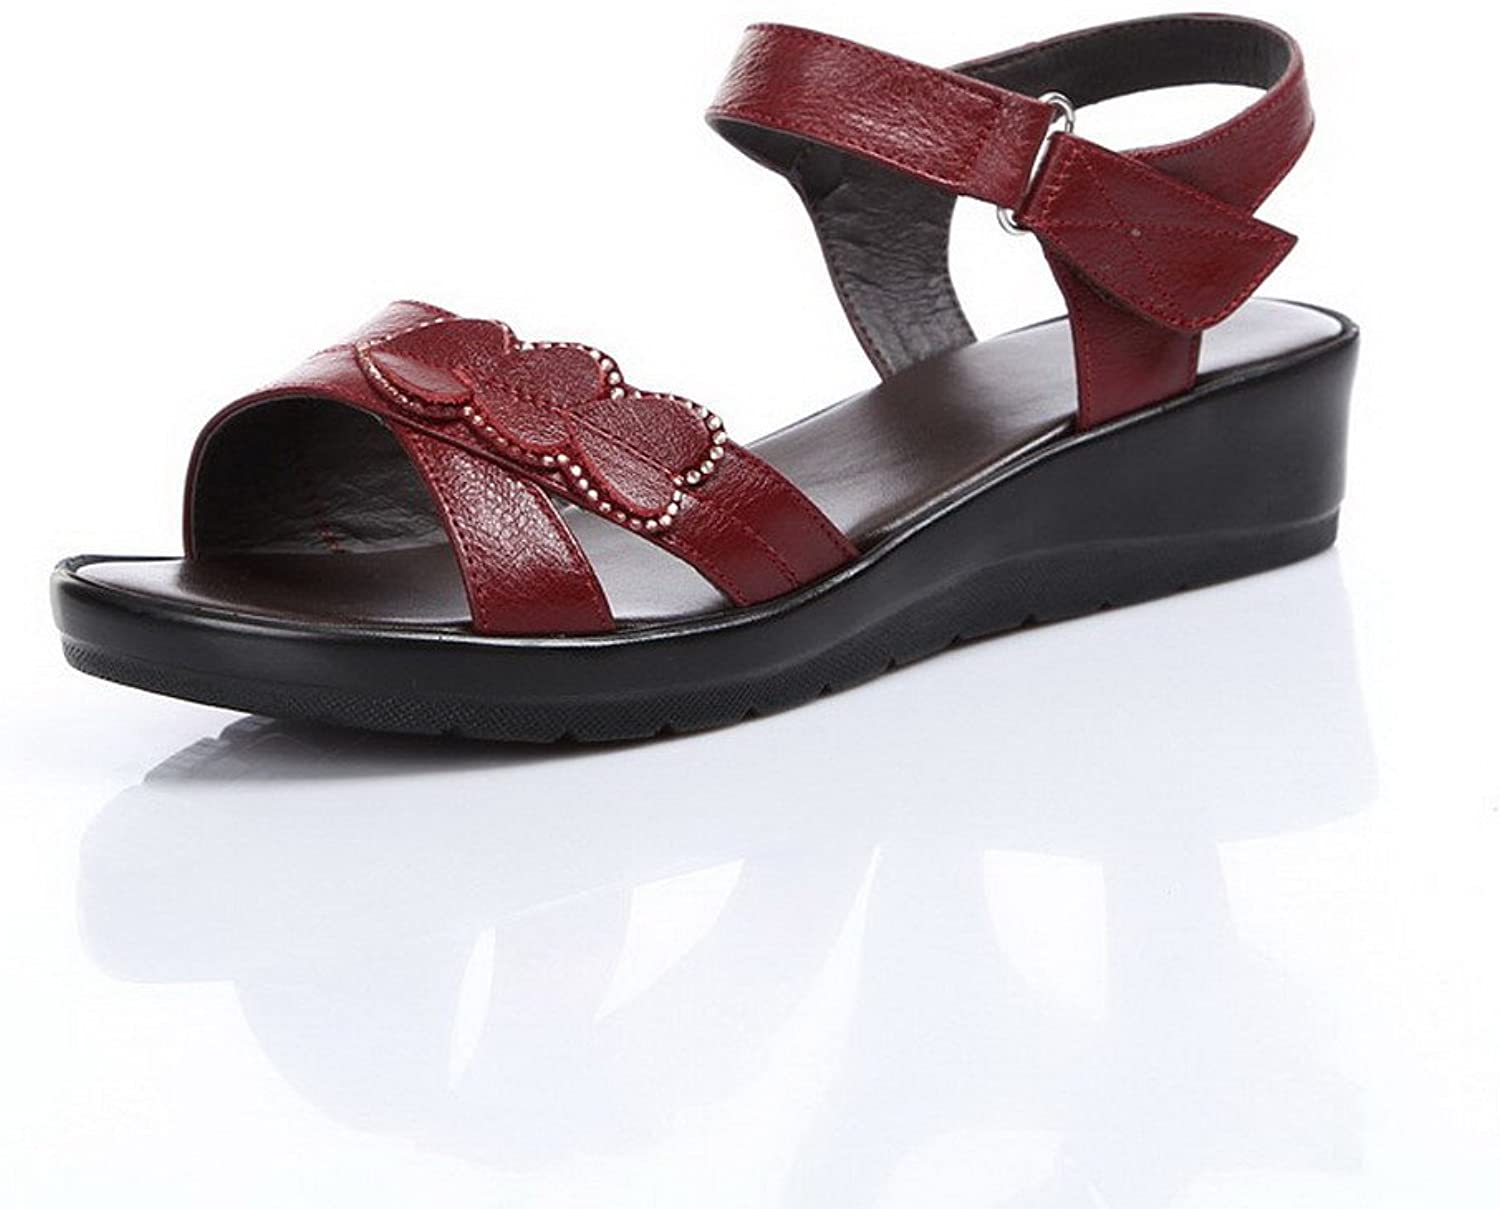 AmoonyFashion Women's Open-Toe Hook-and-Loop Cow Leather Solid Low-Heels Sandals